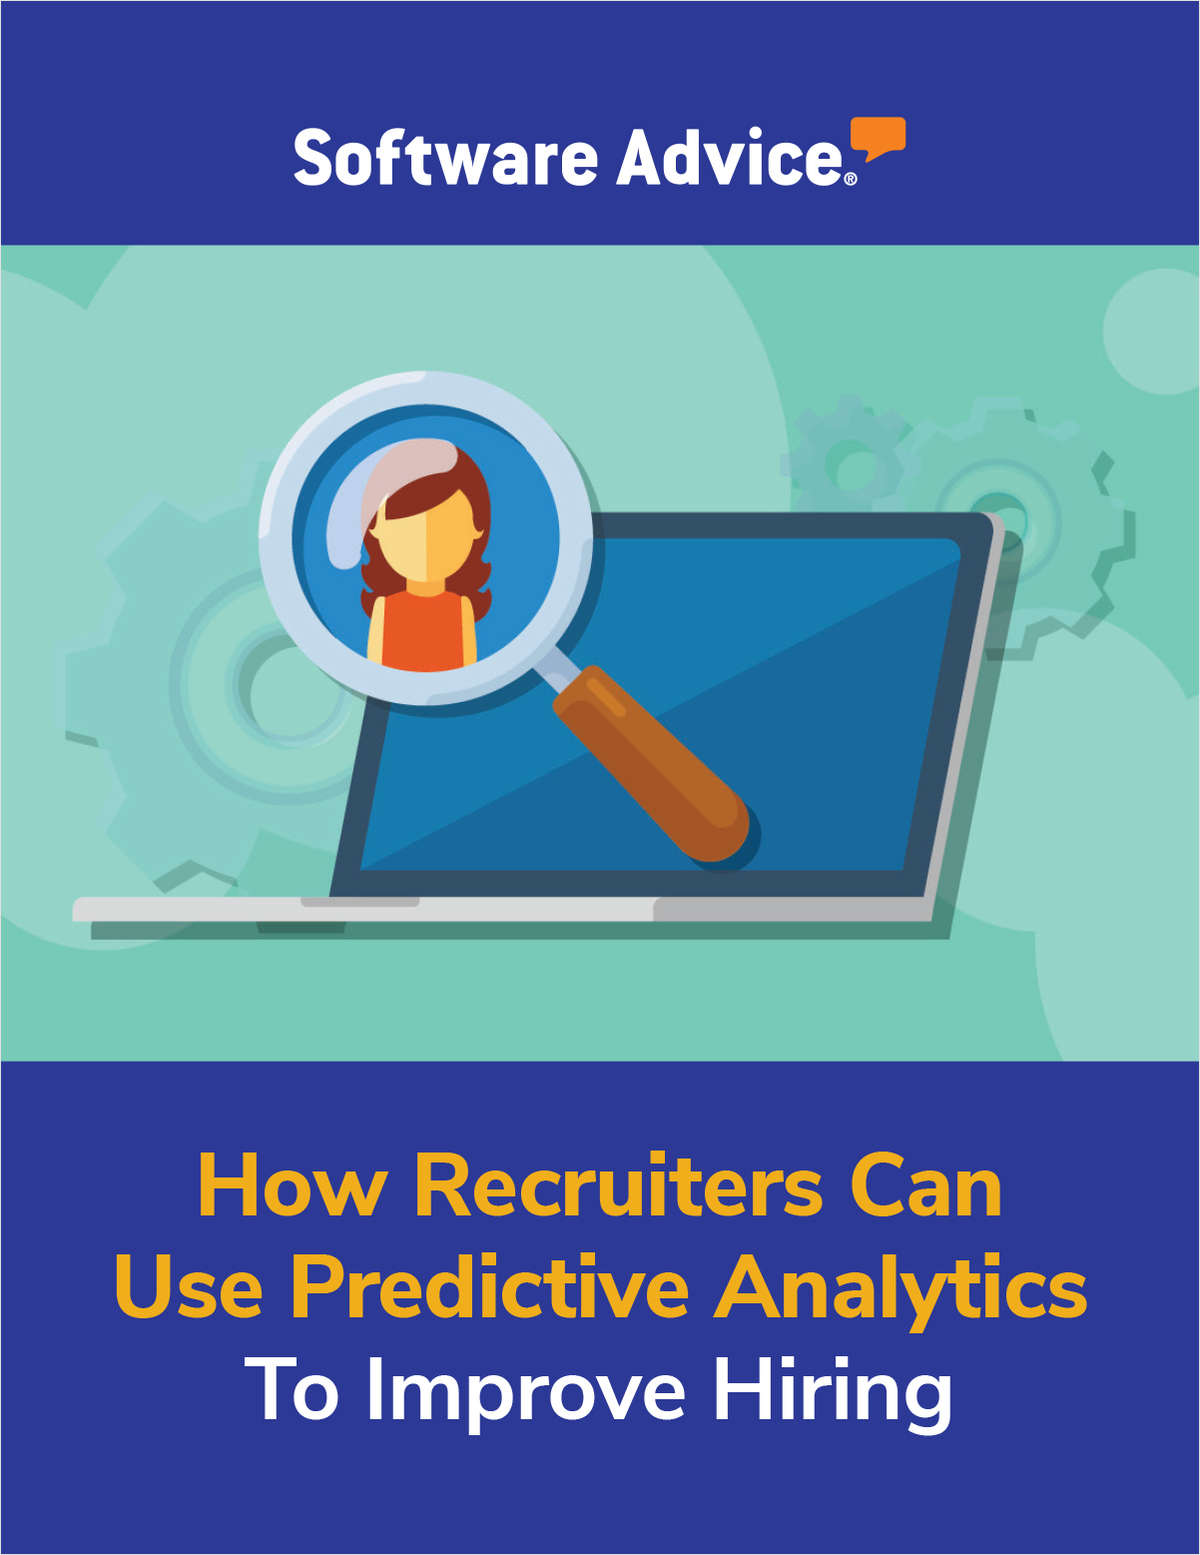 How Recruiters Can Use Predictive Analytics To Improve Hiring